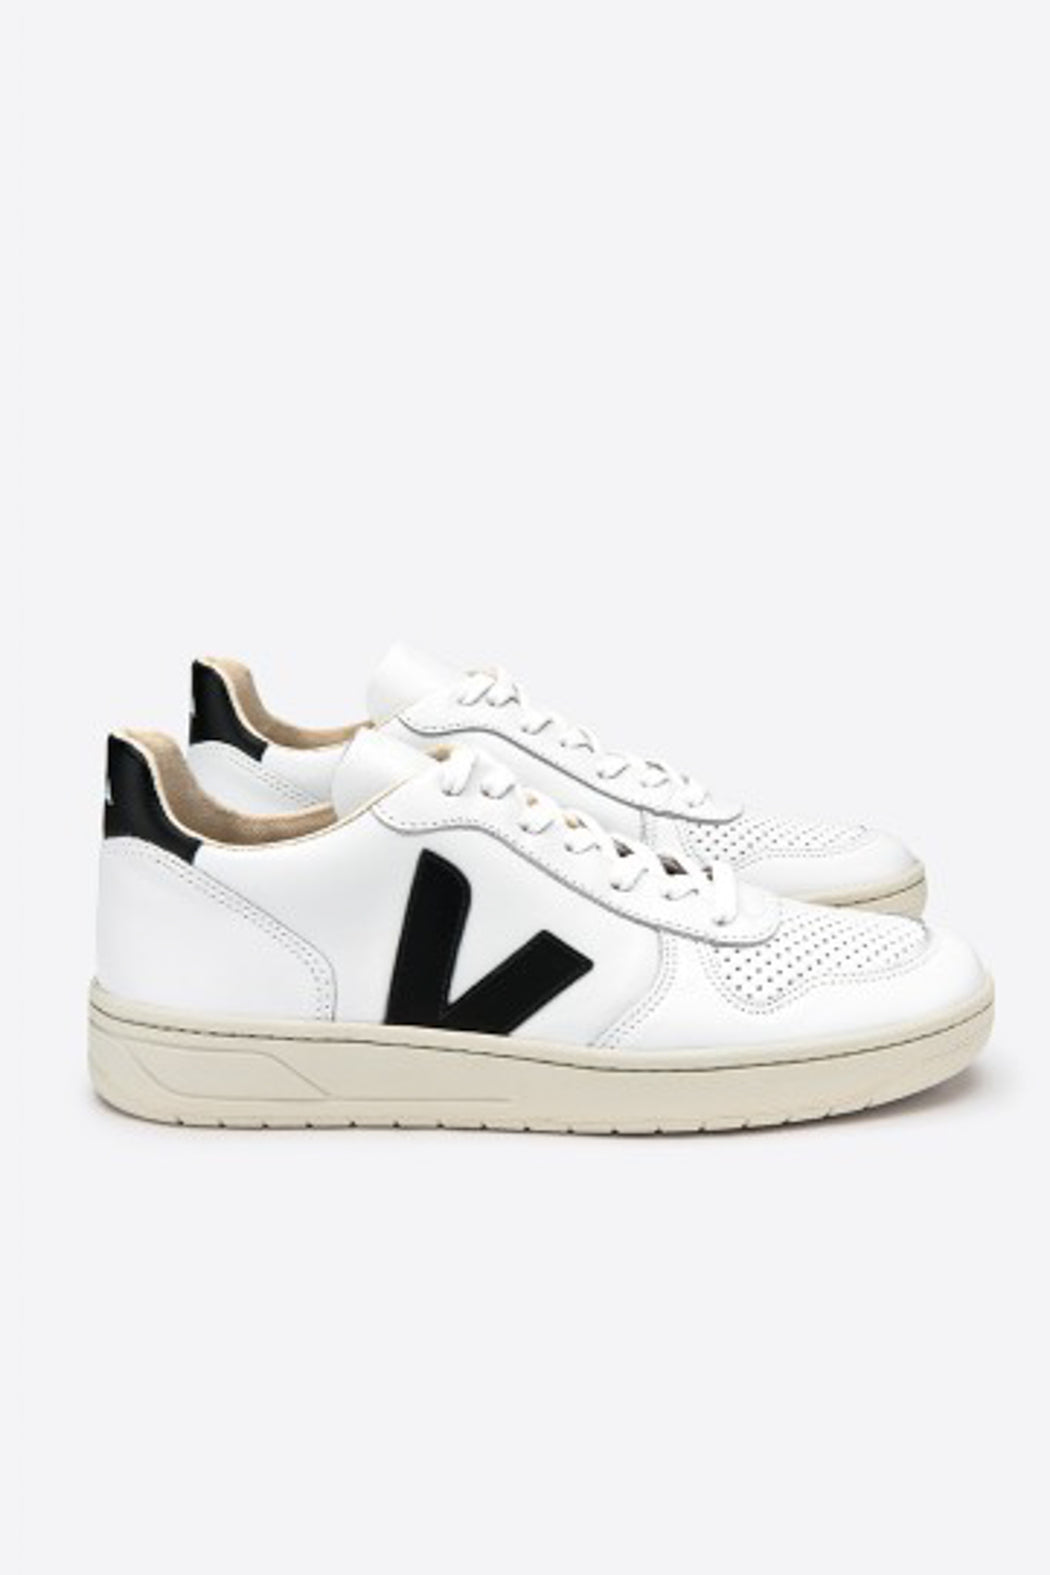 V-10 Leather extra-white black